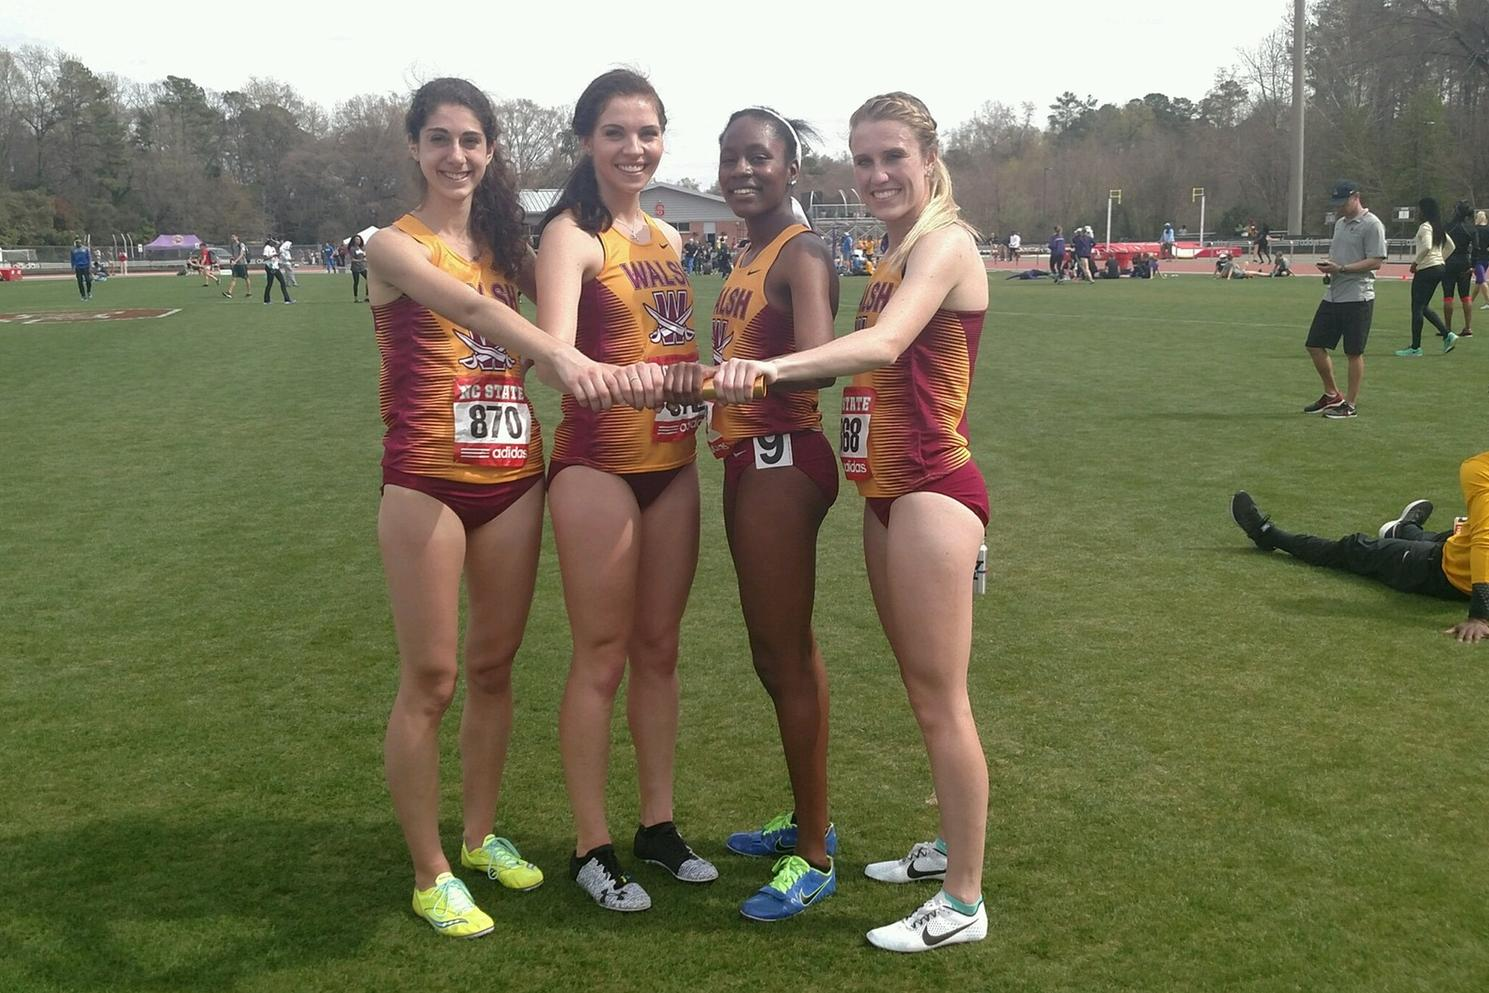 4x800 Shatters Record at Raleigh, Cavs Win At Muskingum